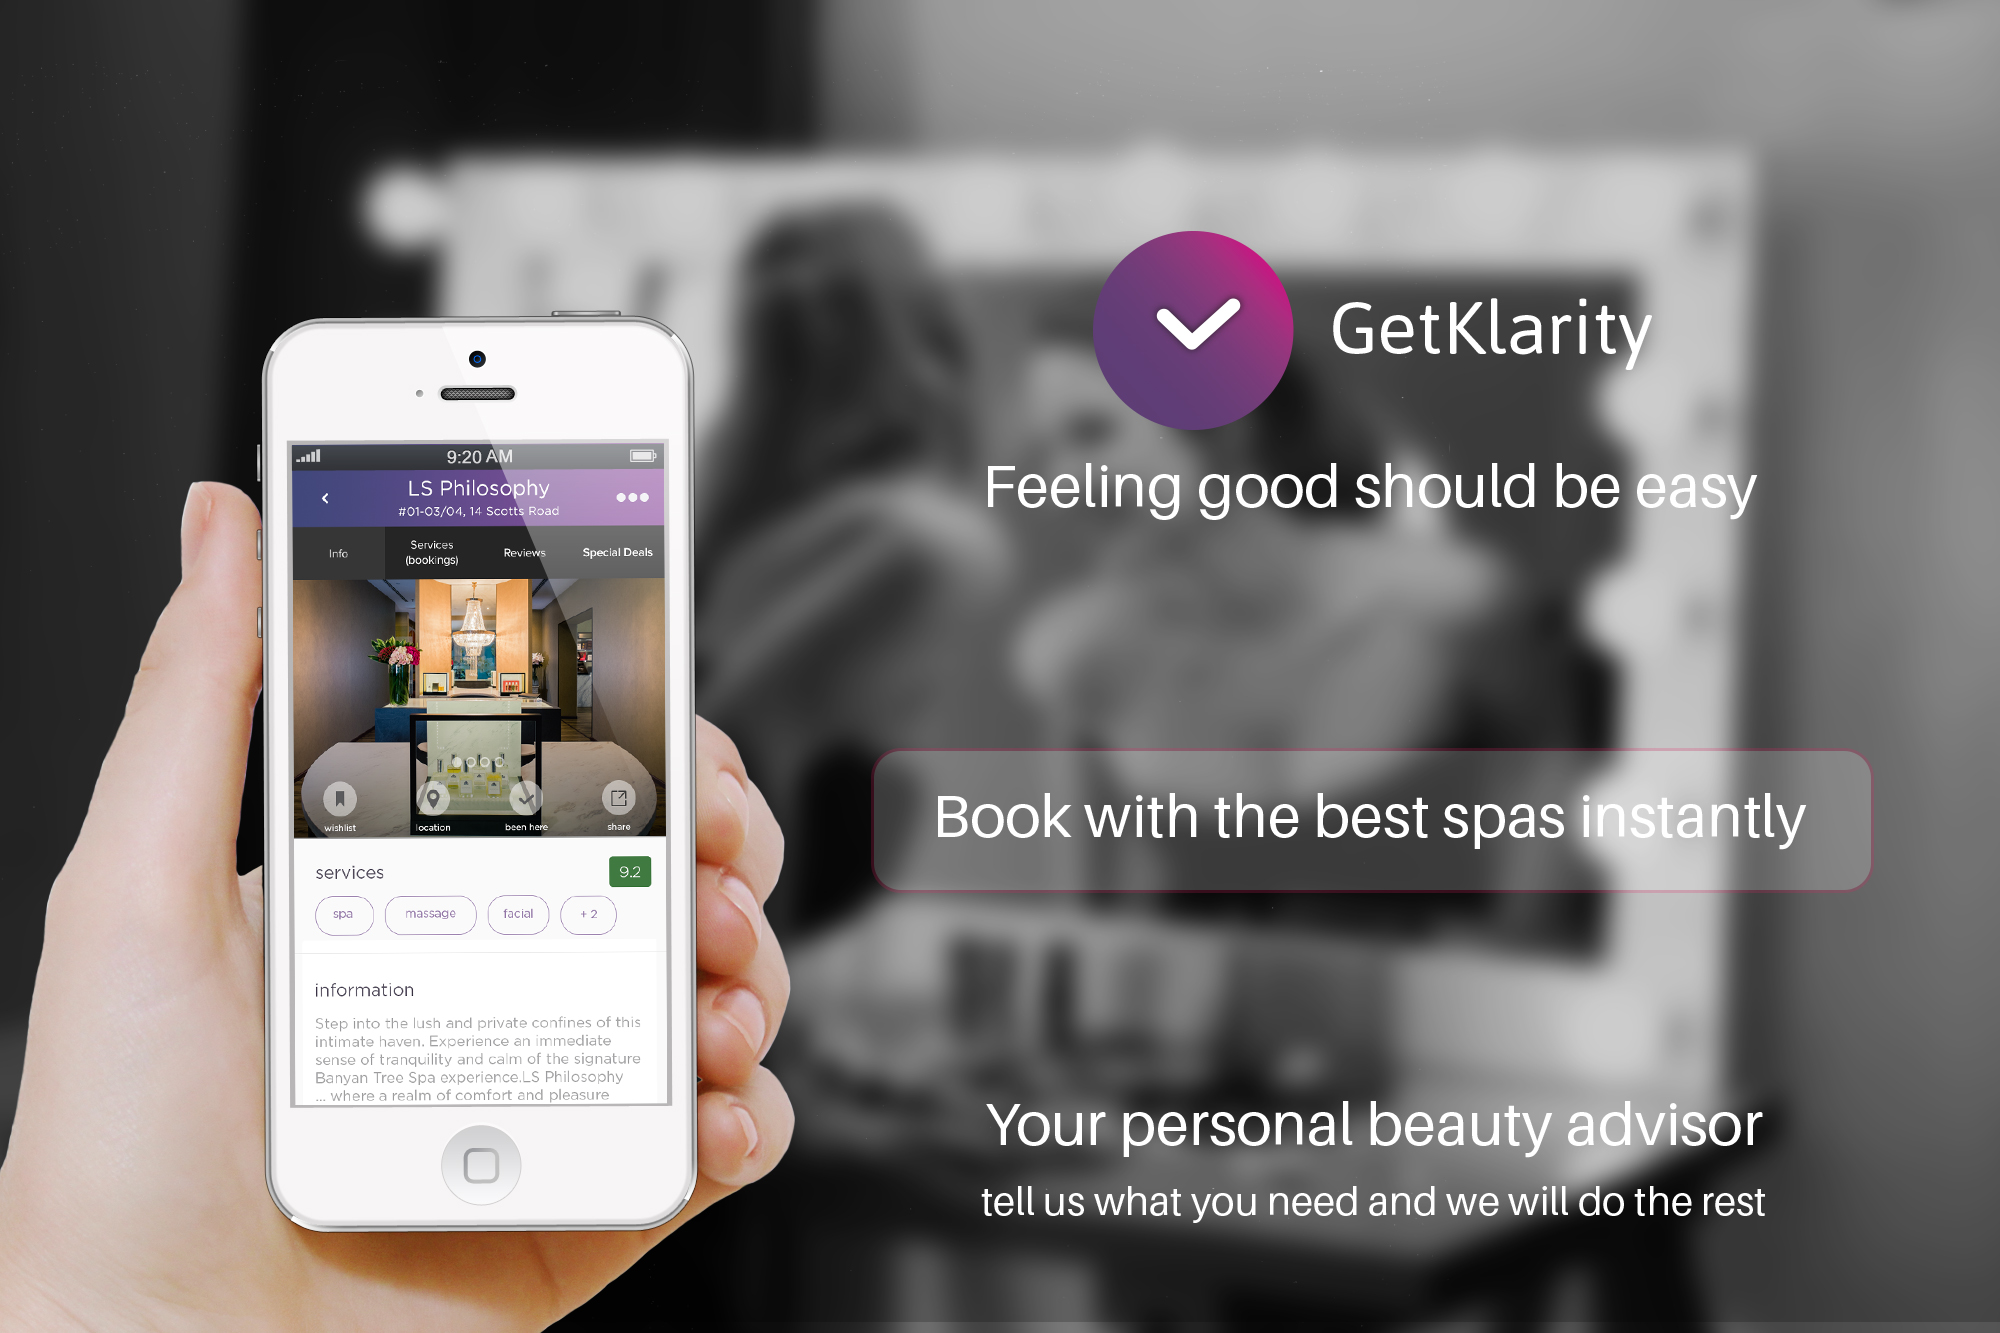 GetKlarity-mobile-app-coming-soon